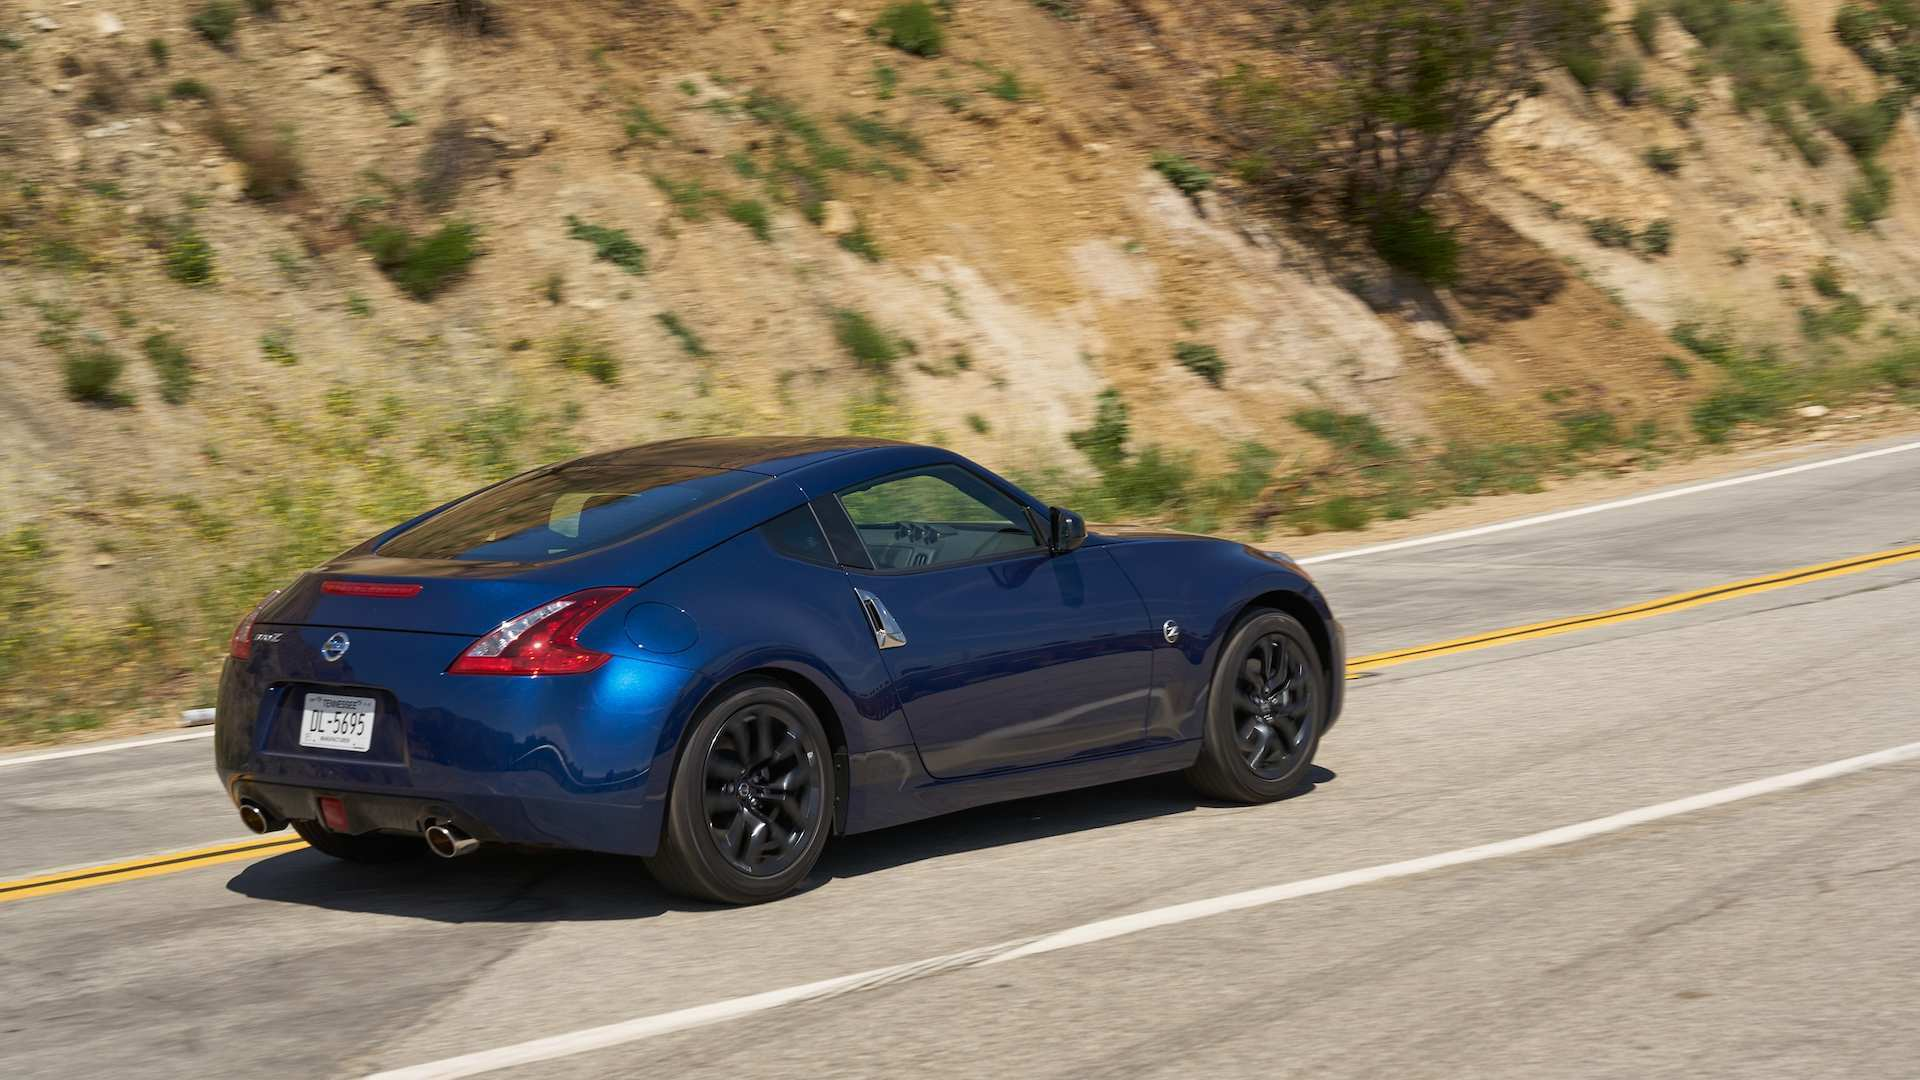 64 Great 2019 Nissan 370Z Heritage Edition Price and Review with 2019 Nissan 370Z Heritage Edition